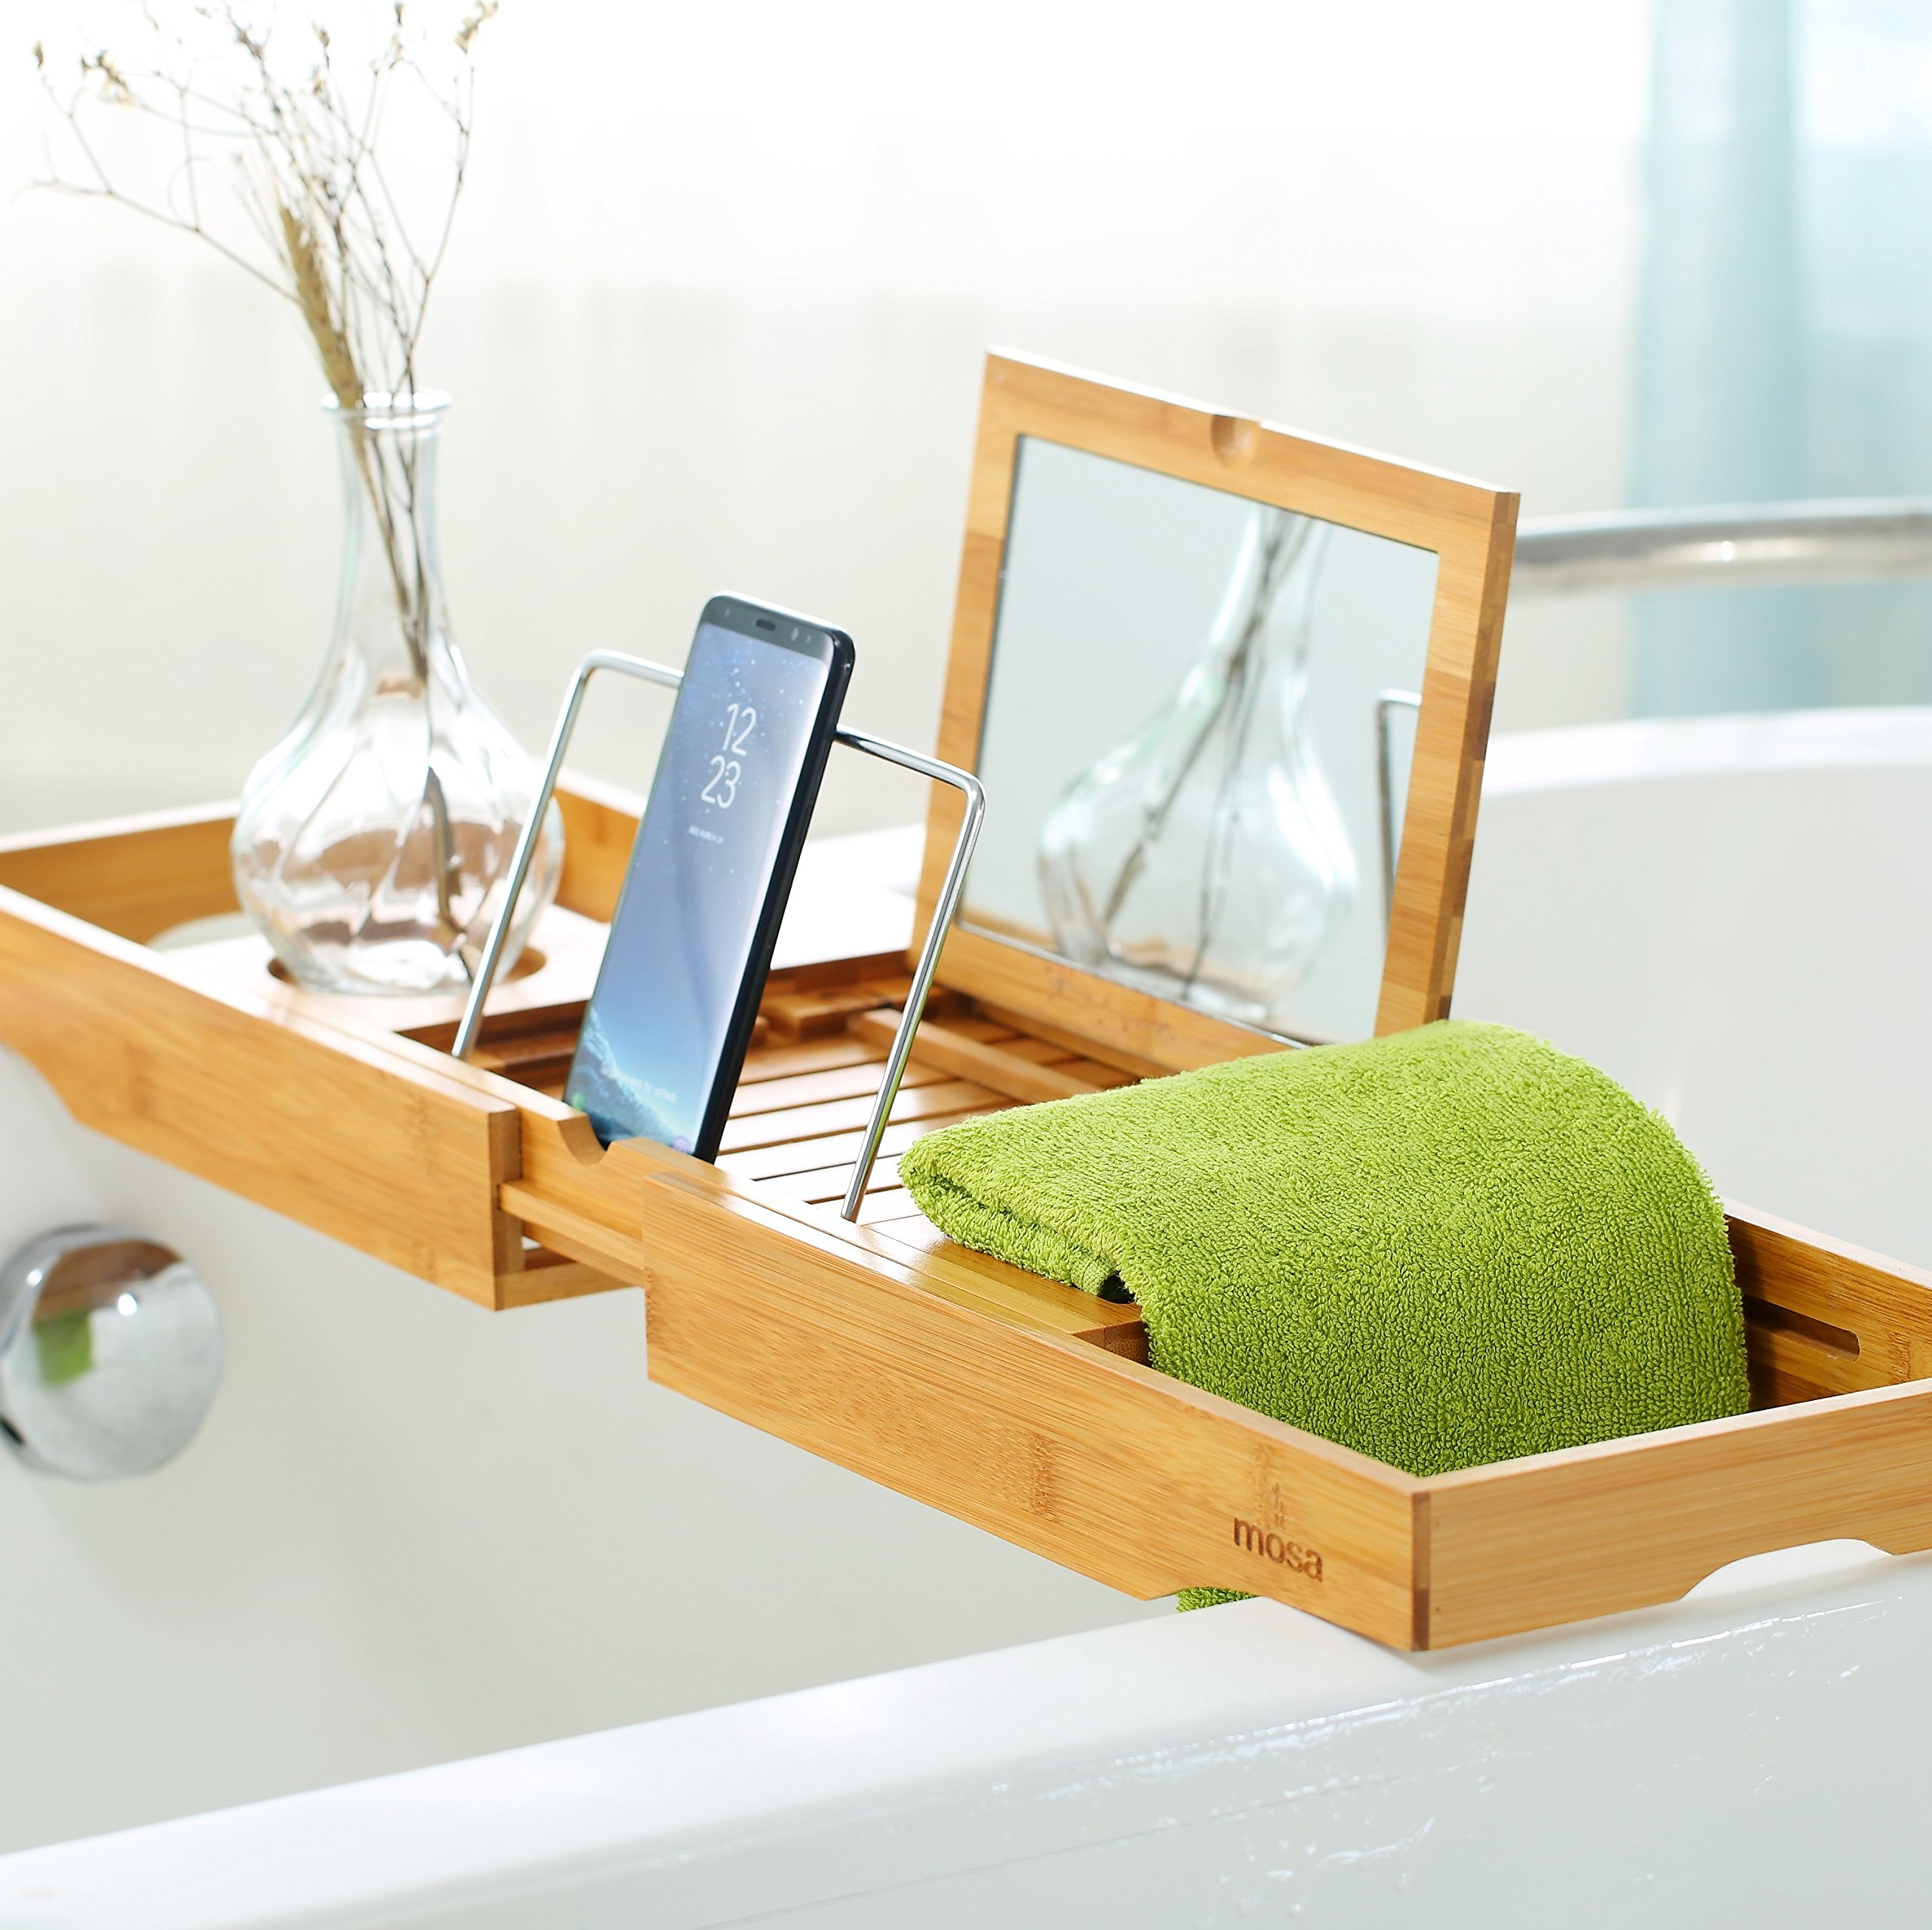 tub bathtub bath book with shampoo wood holder magazine wine pine product phone rack grey caddy bridge handles rope tablet solid wooden borewood glass tray clawfoot handmade